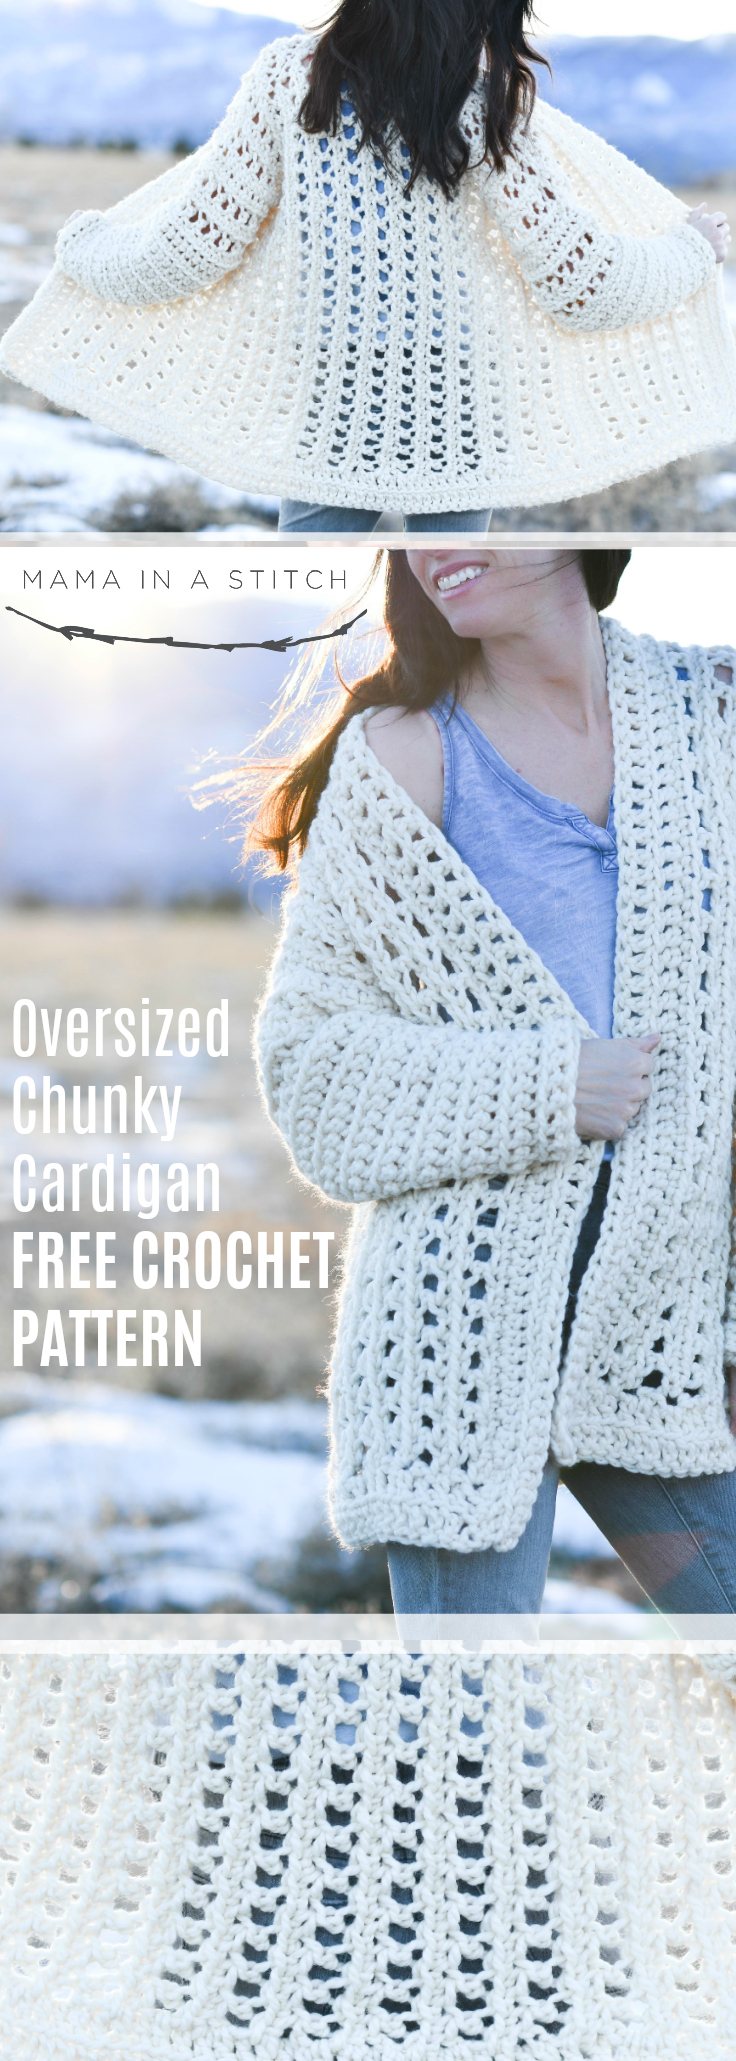 a9279caf6 Light Snow Oversized Cardigan Crochet Free Pattern – Mama In A Stitch